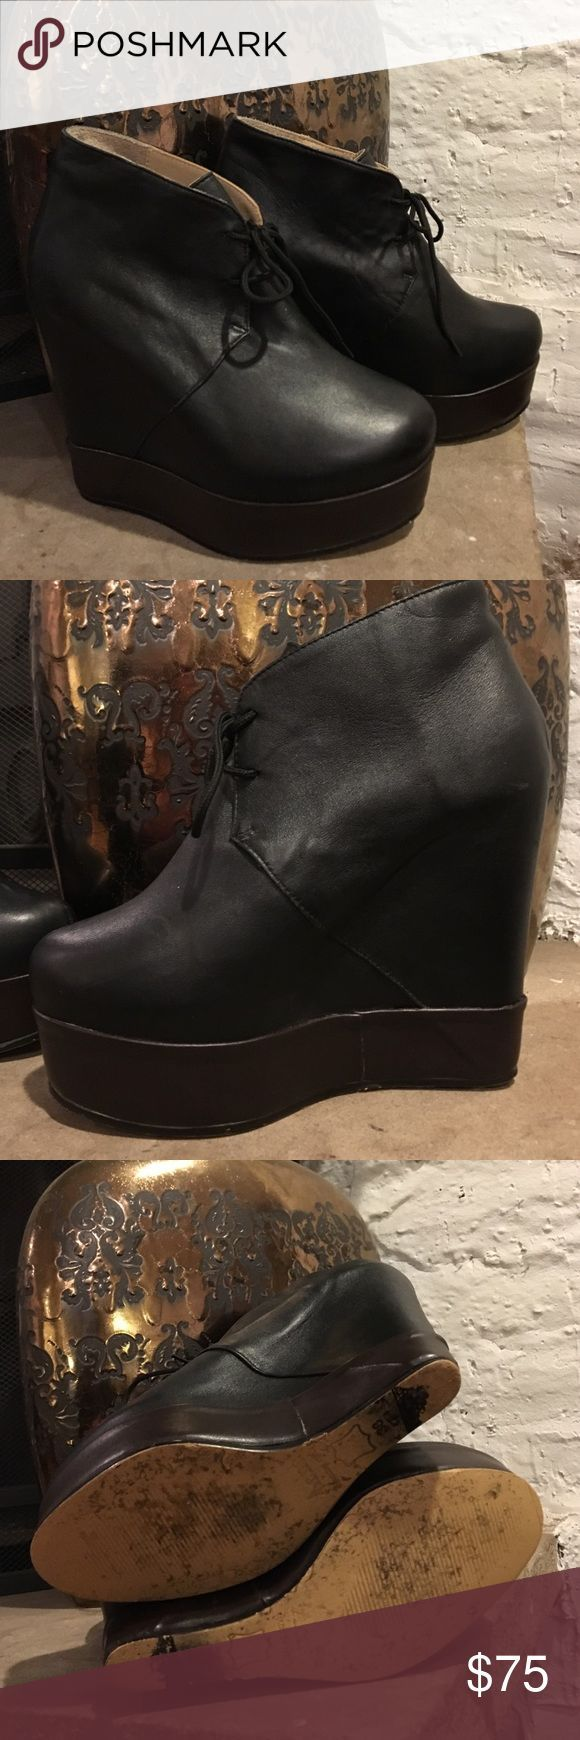 ACNE Booties Black and Brown